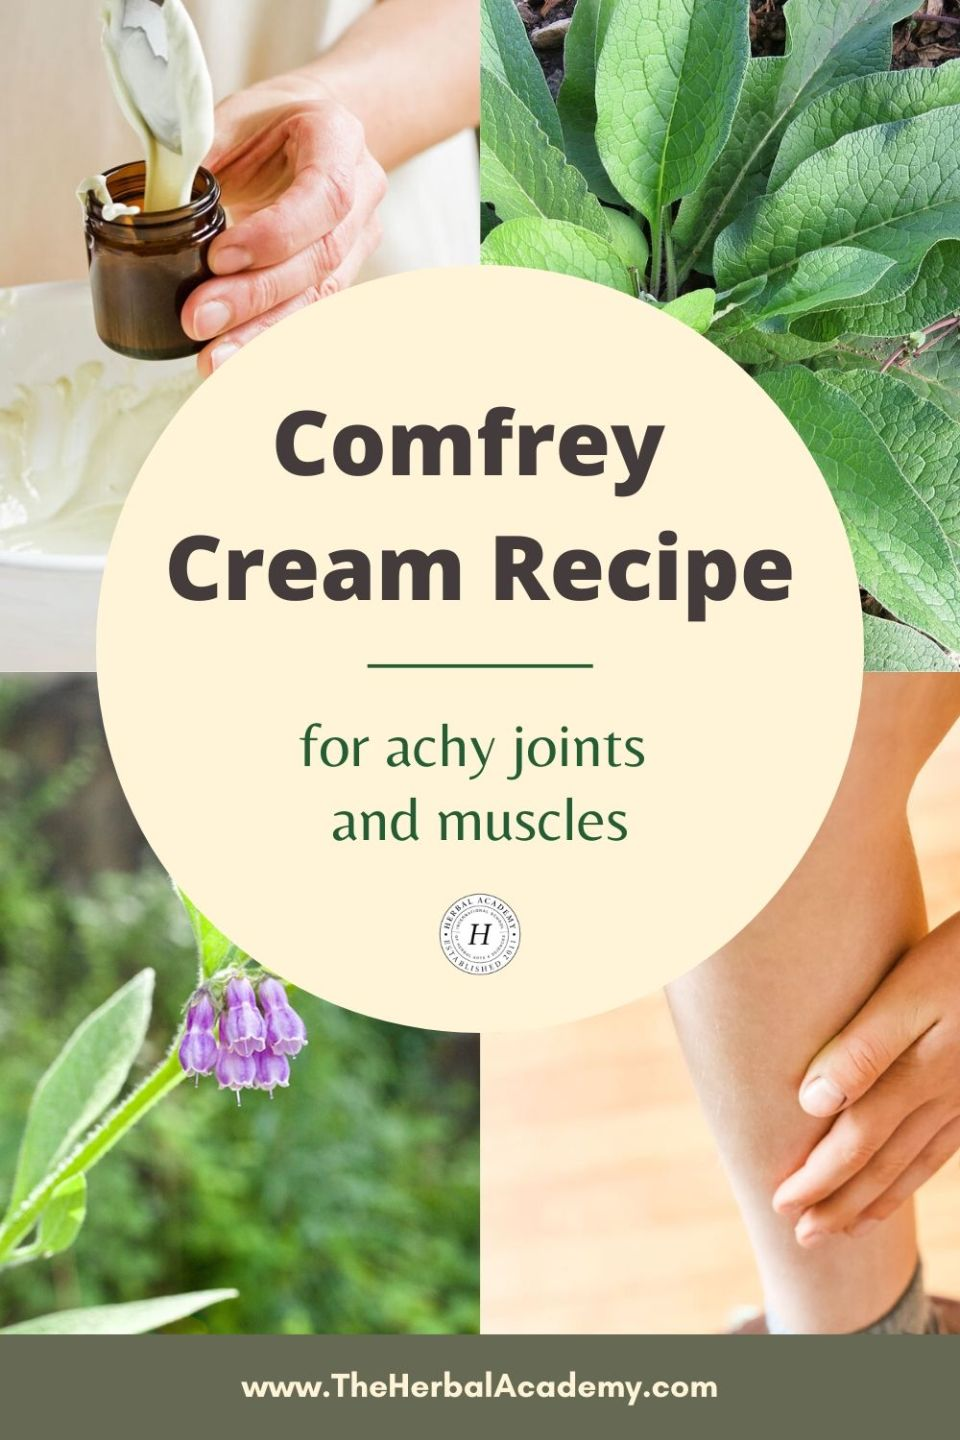 Comfrey Cream Recipe for Achy Joints and Muscles | Herbal Academy | Learn how to make this simple comfrey cream recipe featuring comfrey root tincture to ease achy joints and muscles naturally.